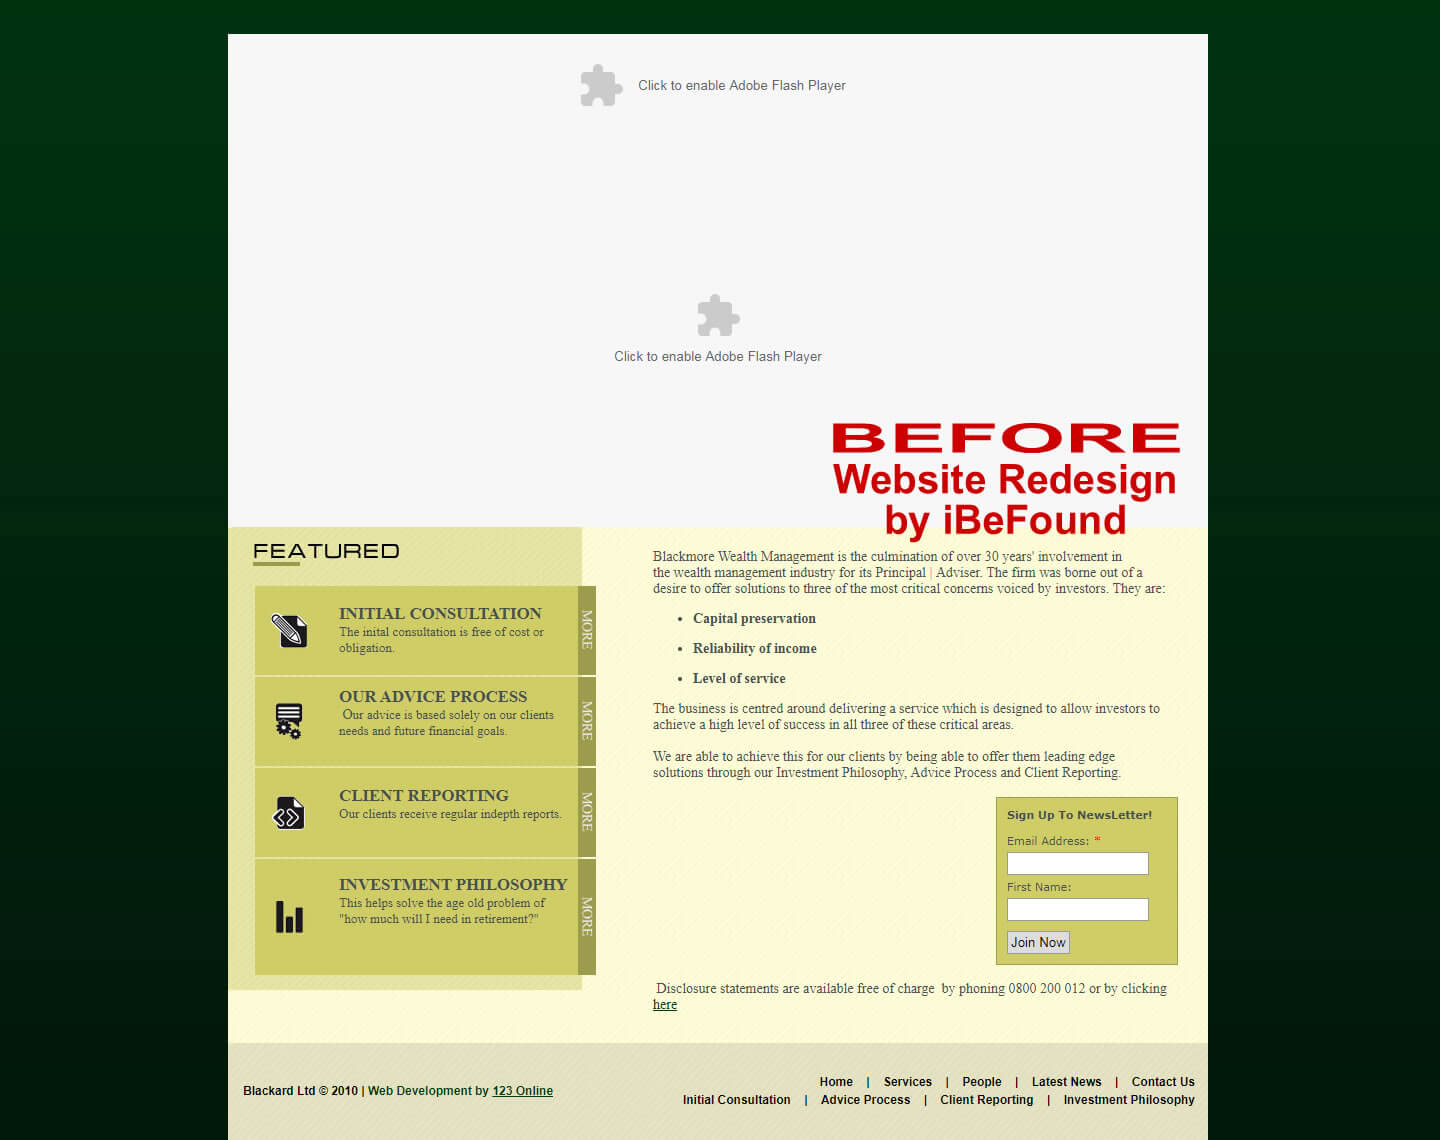 Homepage Of Blackmore Wealth Management Before Website Redesign By IBeFound Digital Marketing